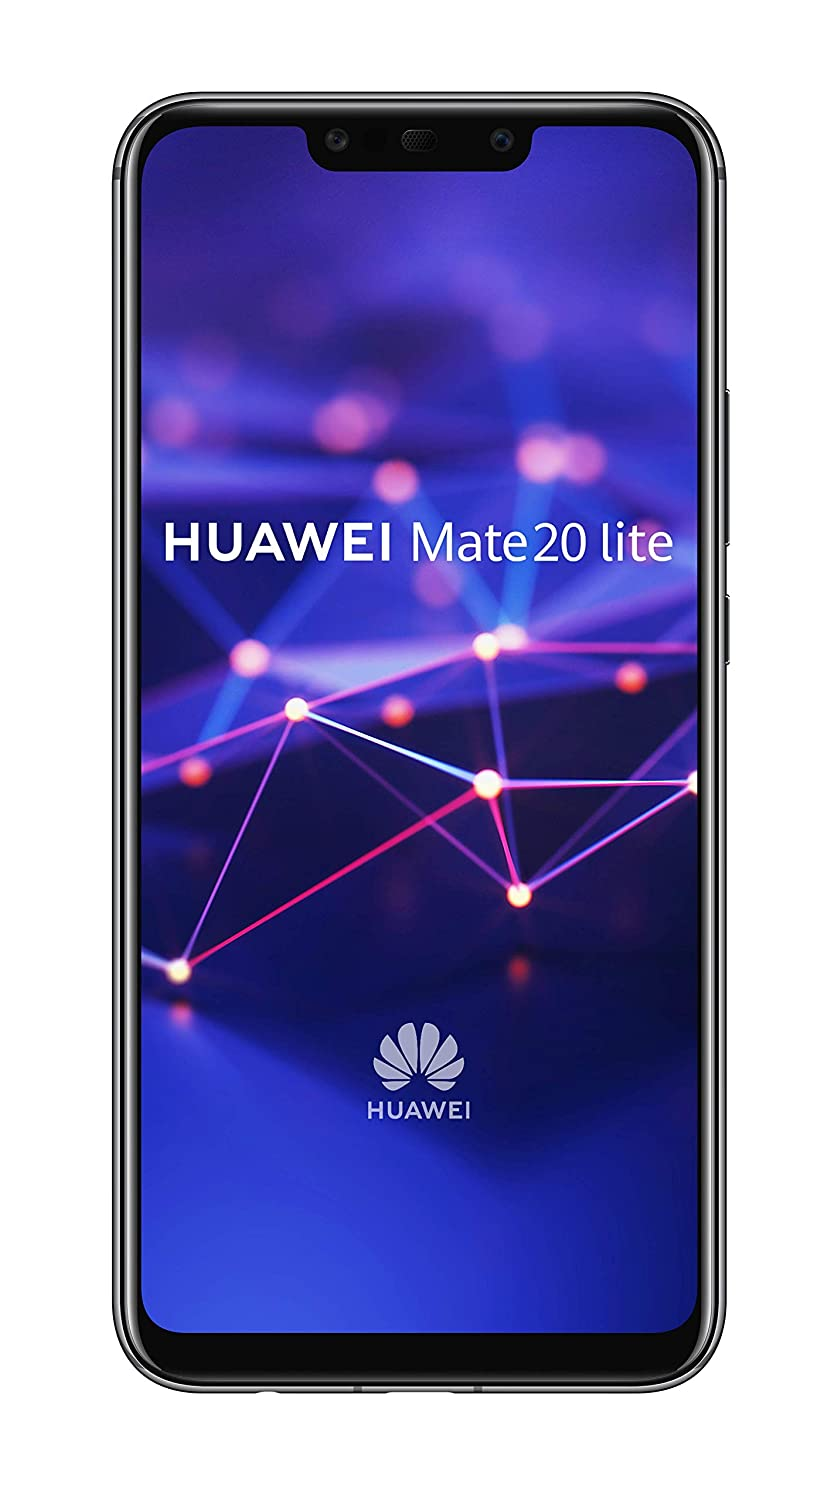 Huawei Mate20Lite 4 GB/64 GB Dual SIM Smartphone - Black (West European)